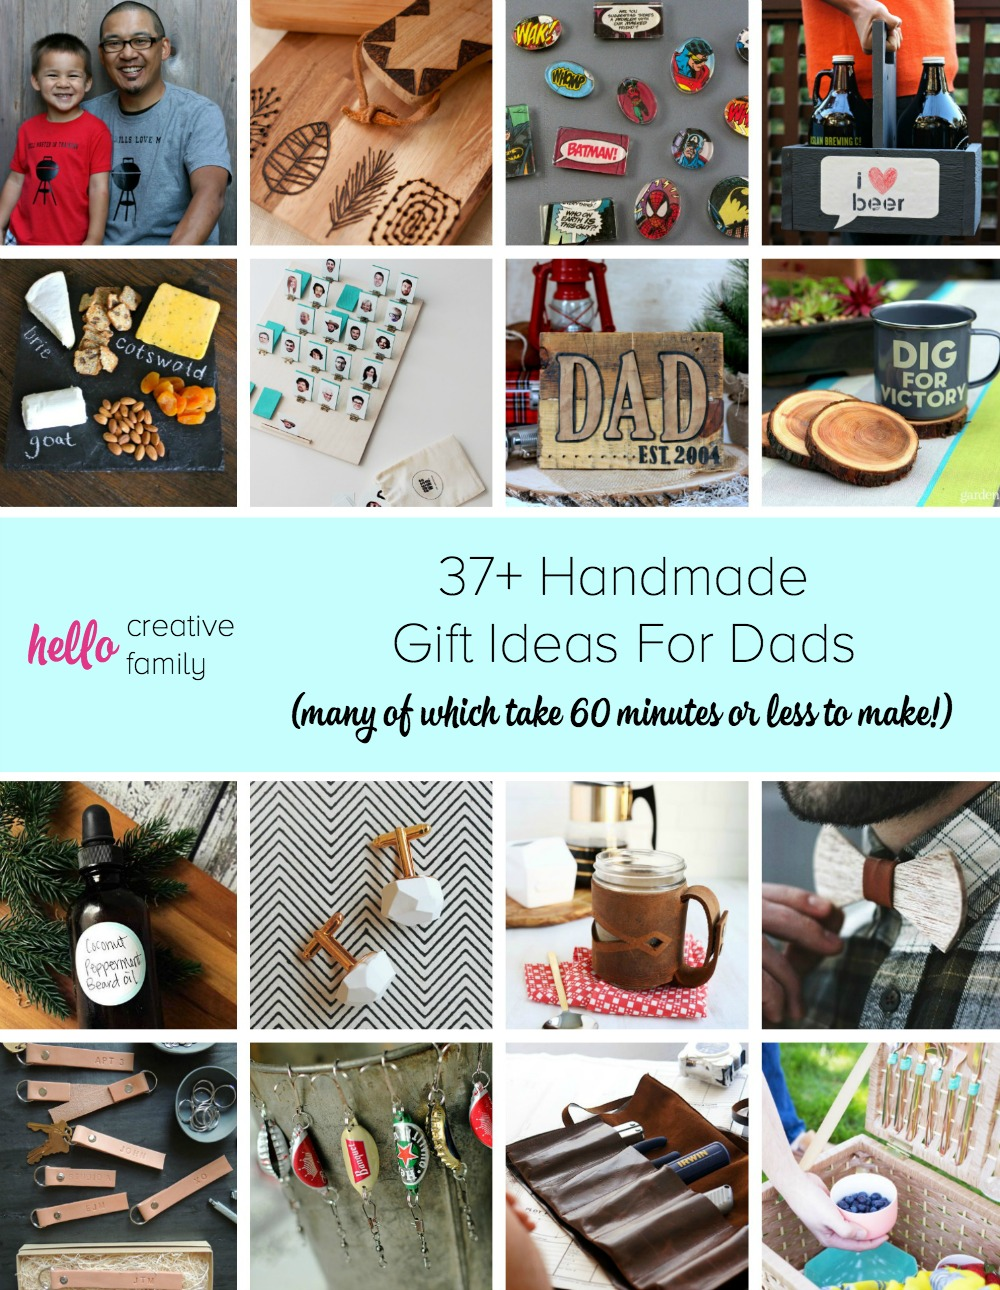 37 Handmade Gift Ideas For Dads Many Of Which Take 60 Minutes Or Less To Make Hello Creative Family